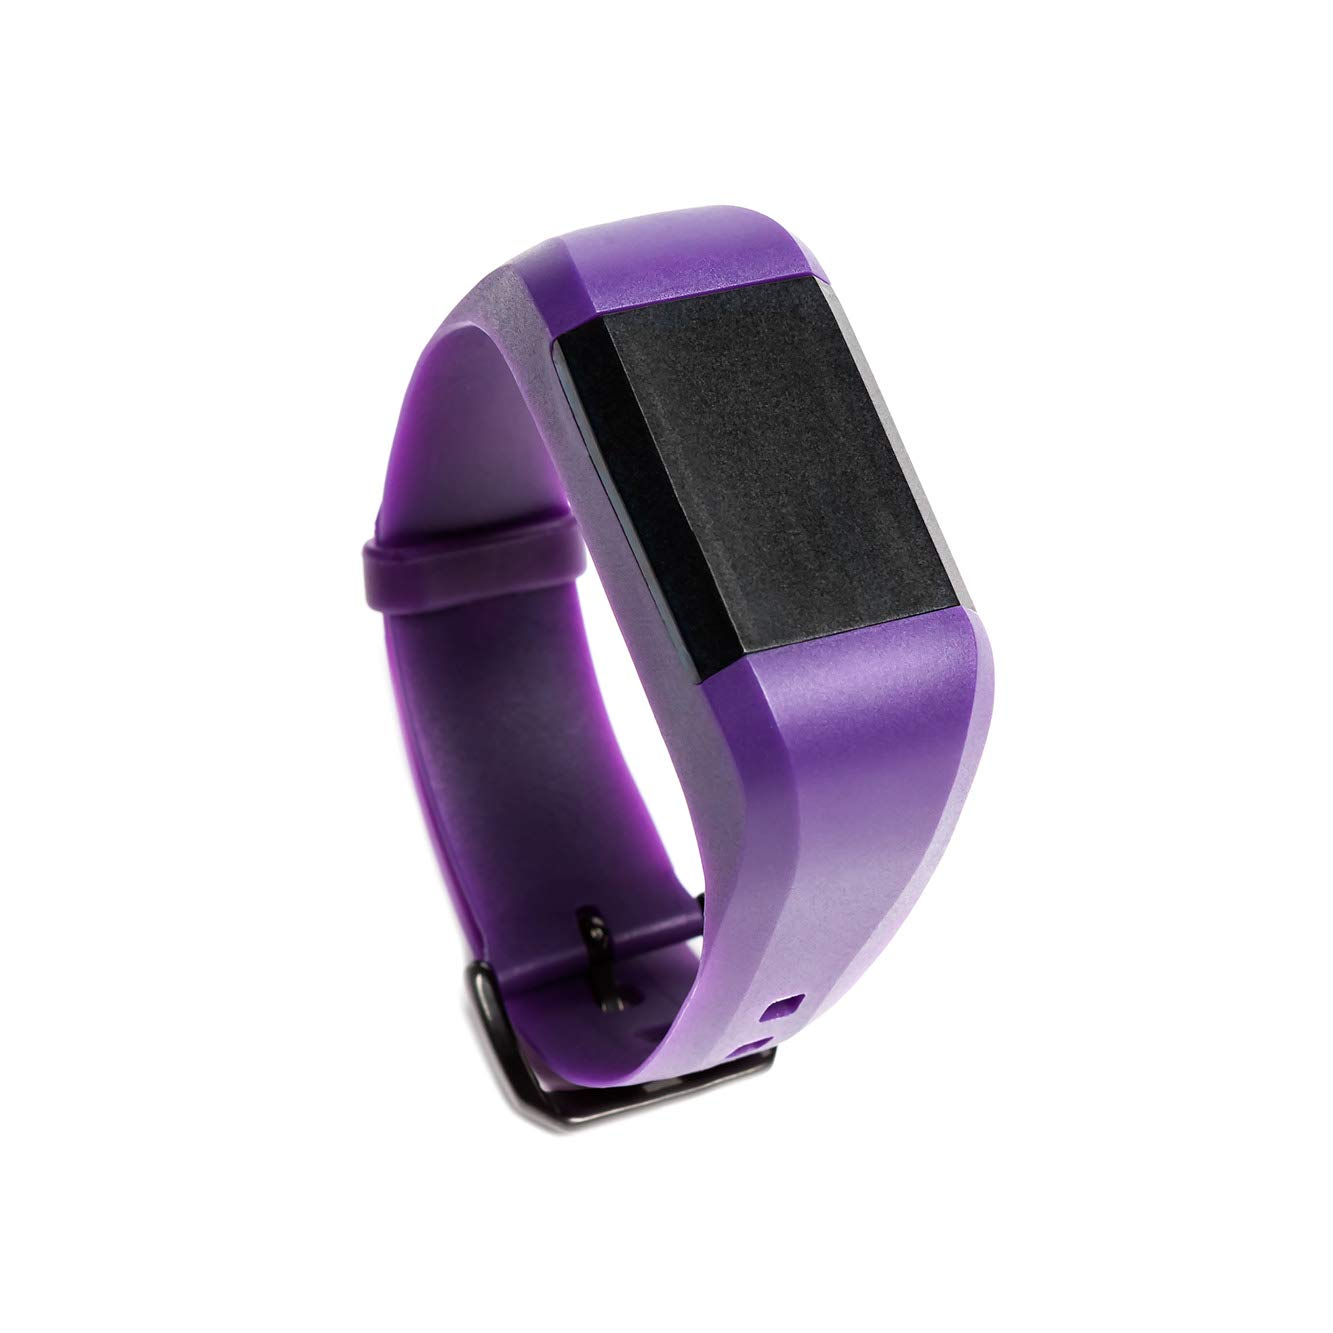 Revibe Connect: Vibration Reminder Wristband - Anti-Distraction, Educational Technology, Timer Tool